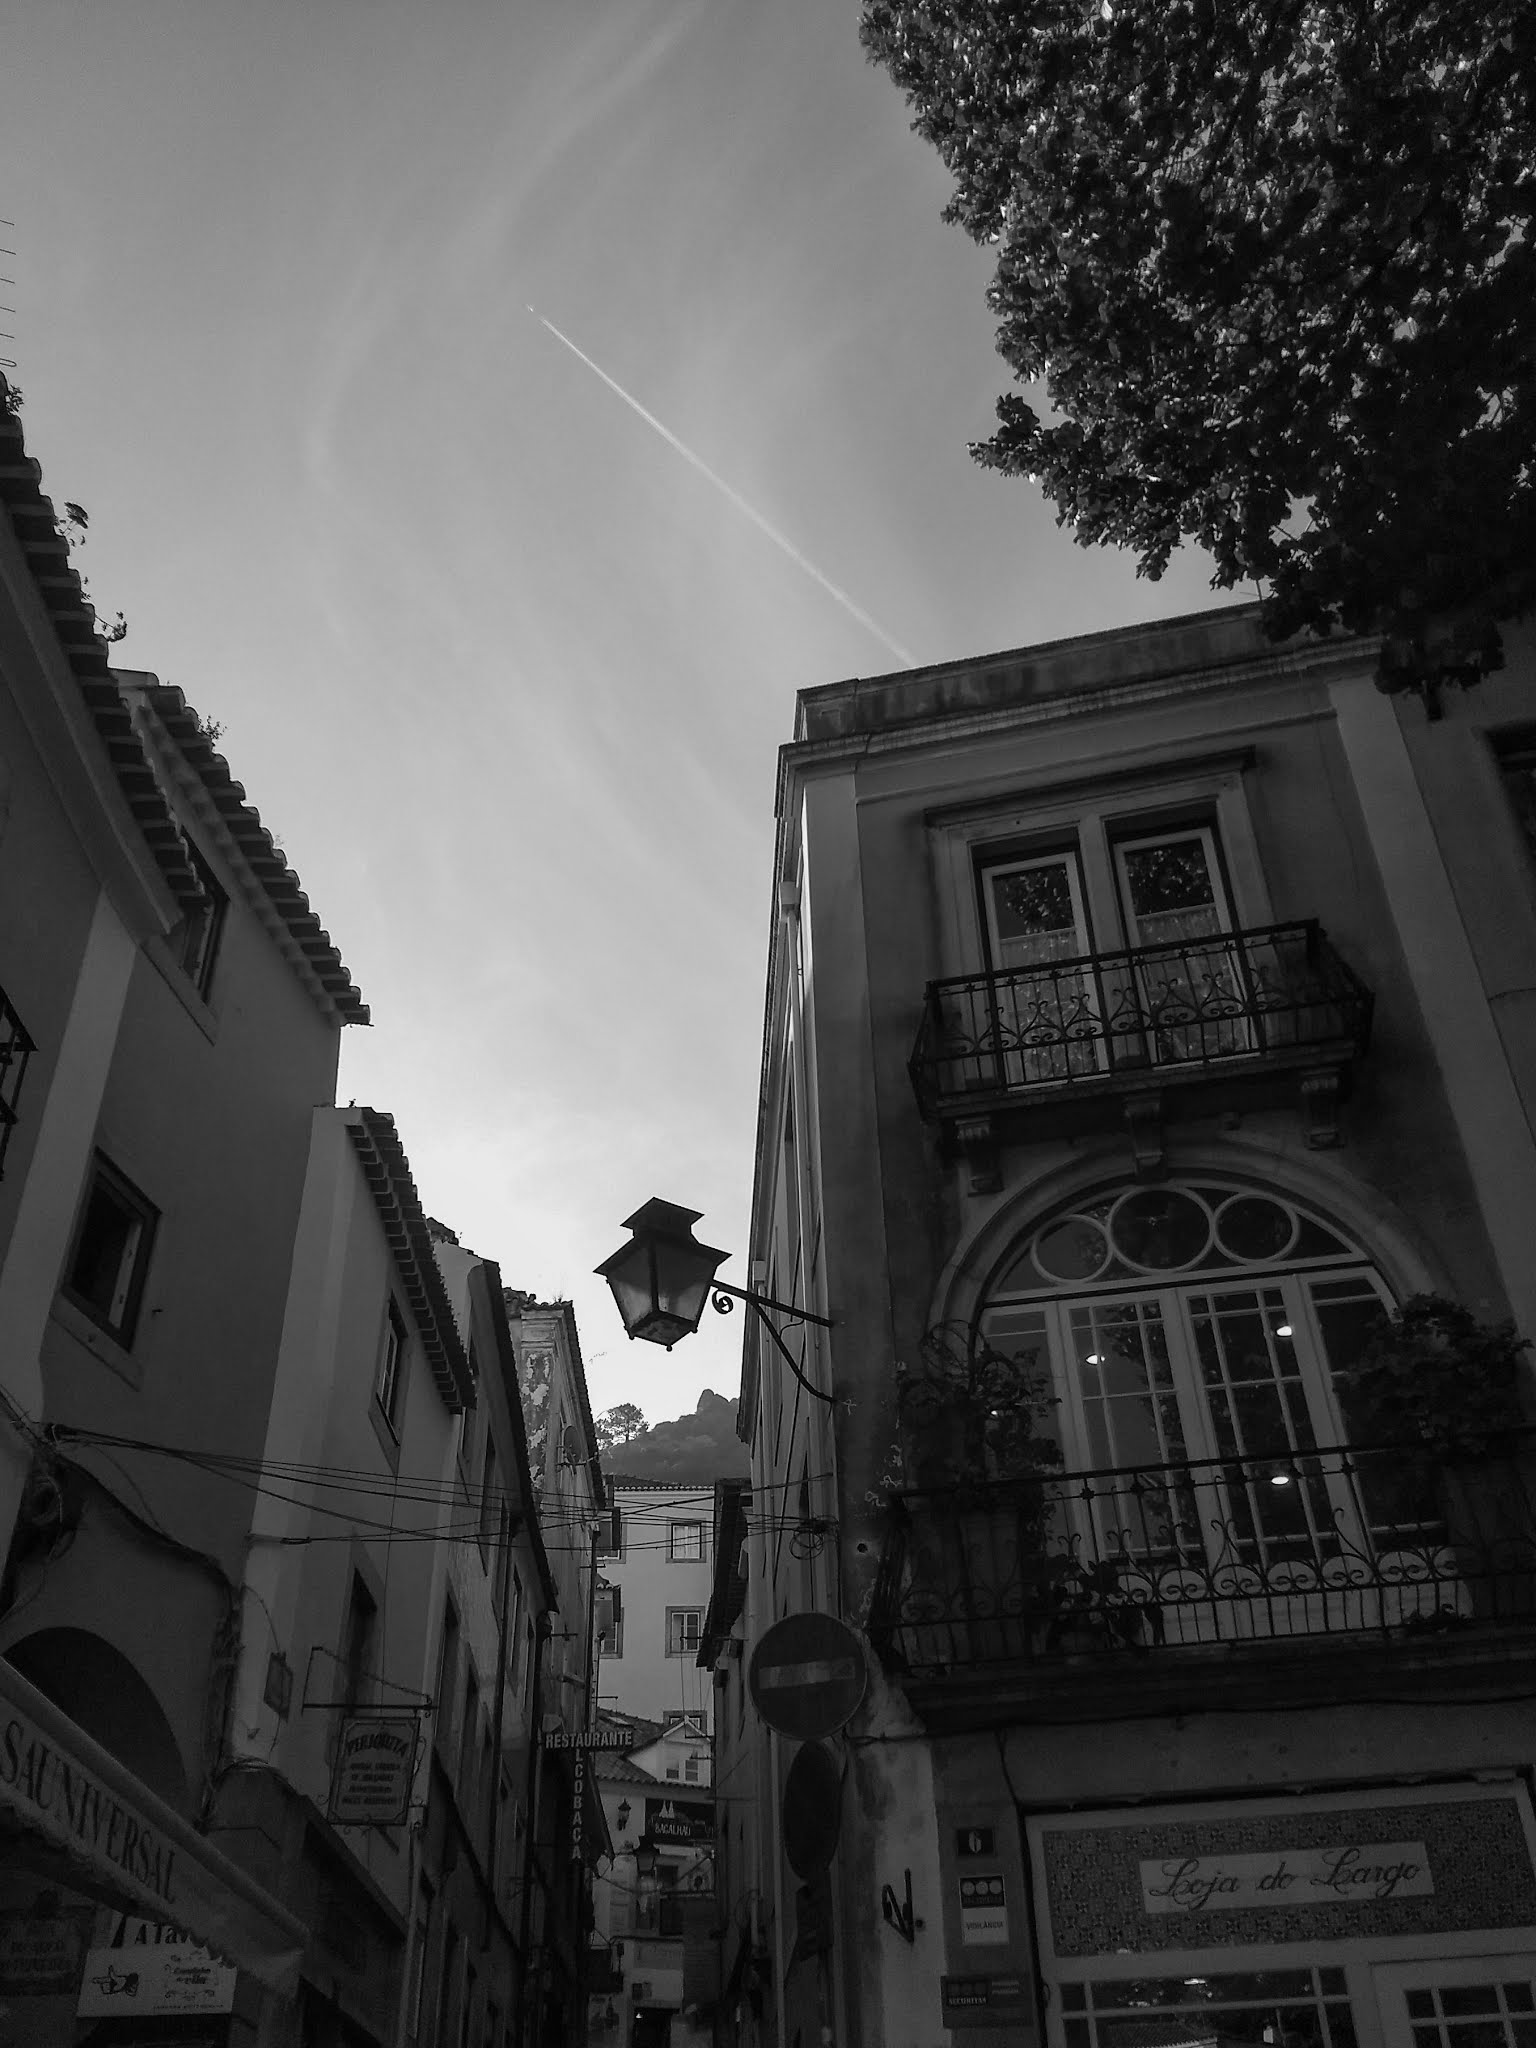 Windows in a building on a street in Sintra in black and white.